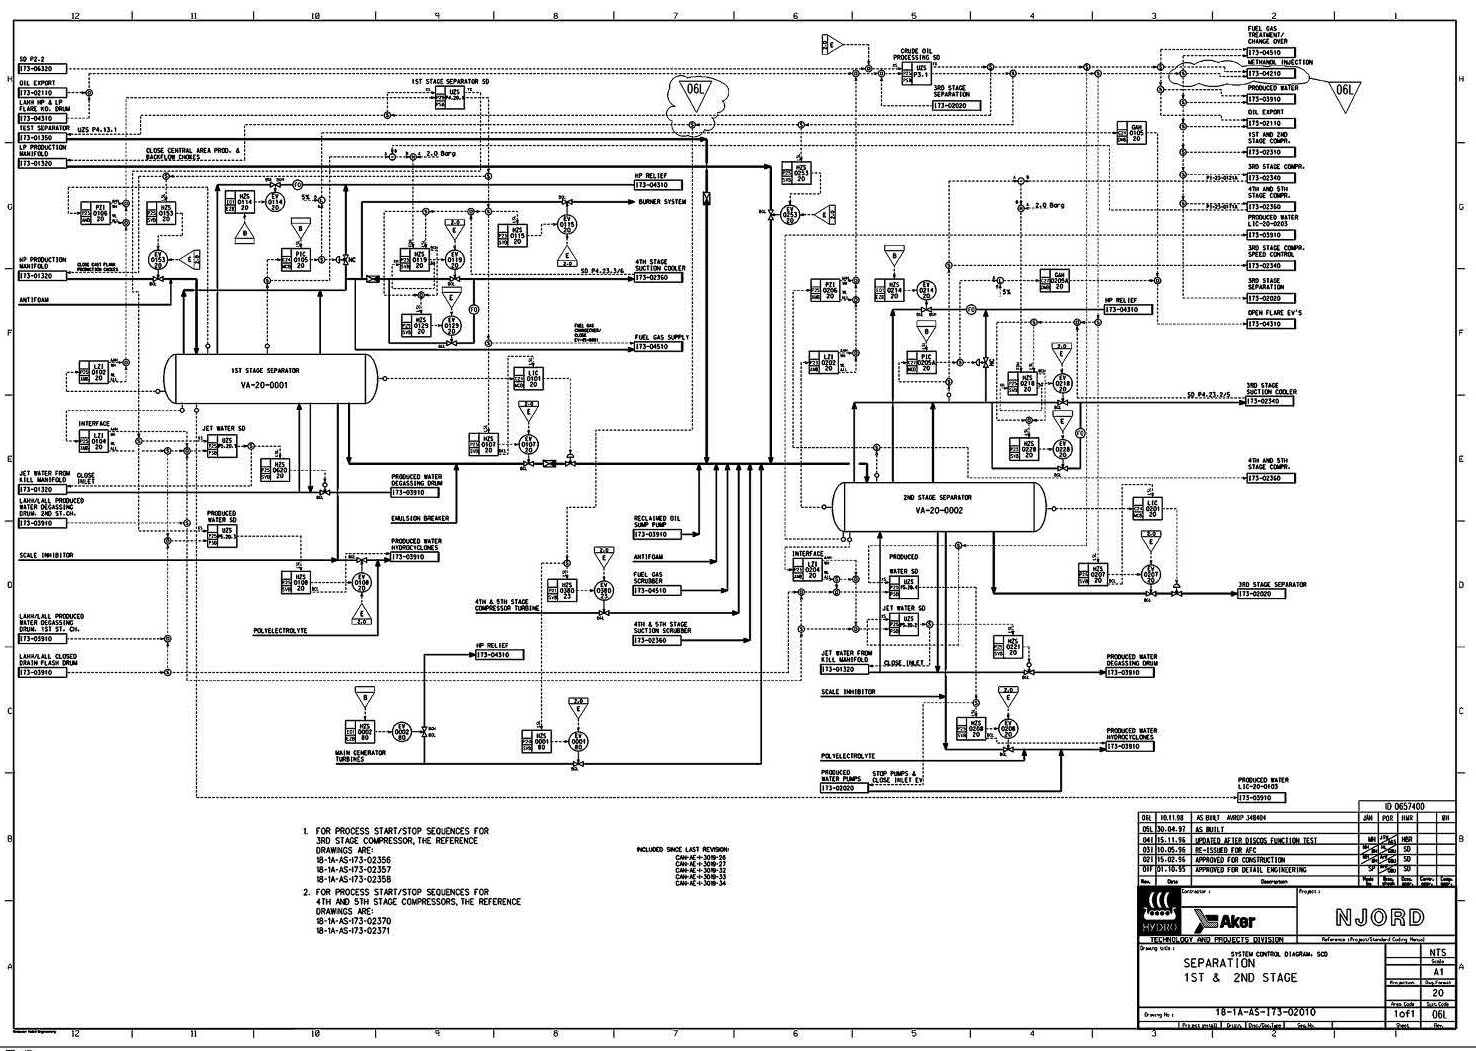 Fuel System Schematic Color Code Wiring Diagram Fuse Box